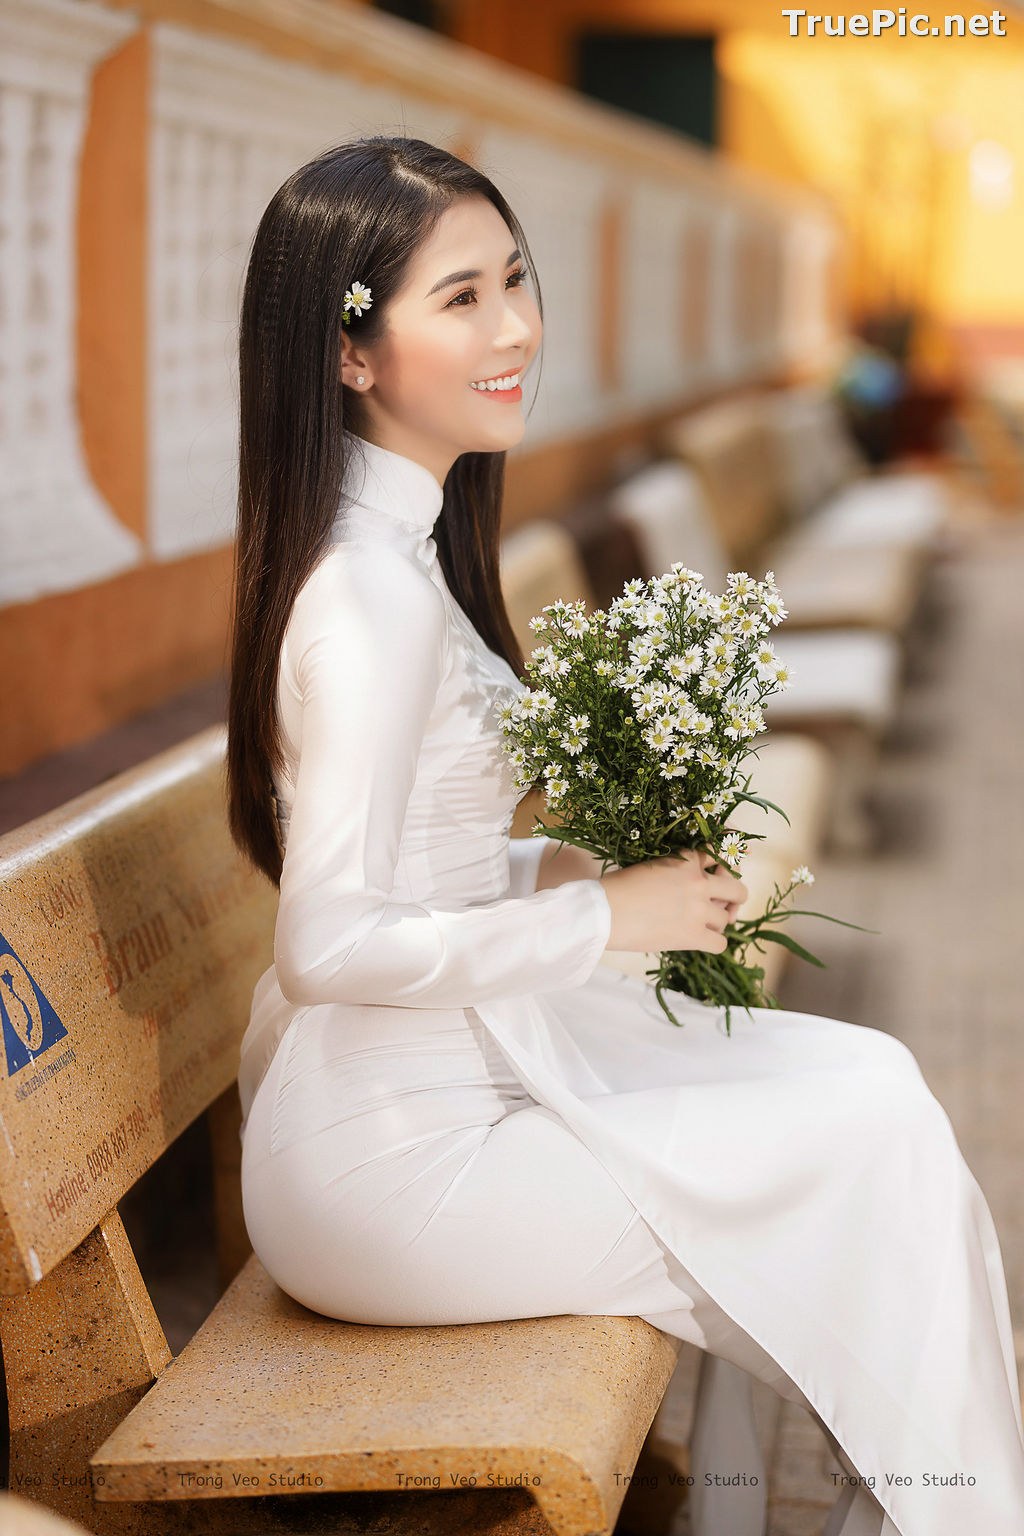 Image The Beauty of Vietnamese Girls with Traditional Dress (Ao Dai) #2 - TruePic.net - Picture-7